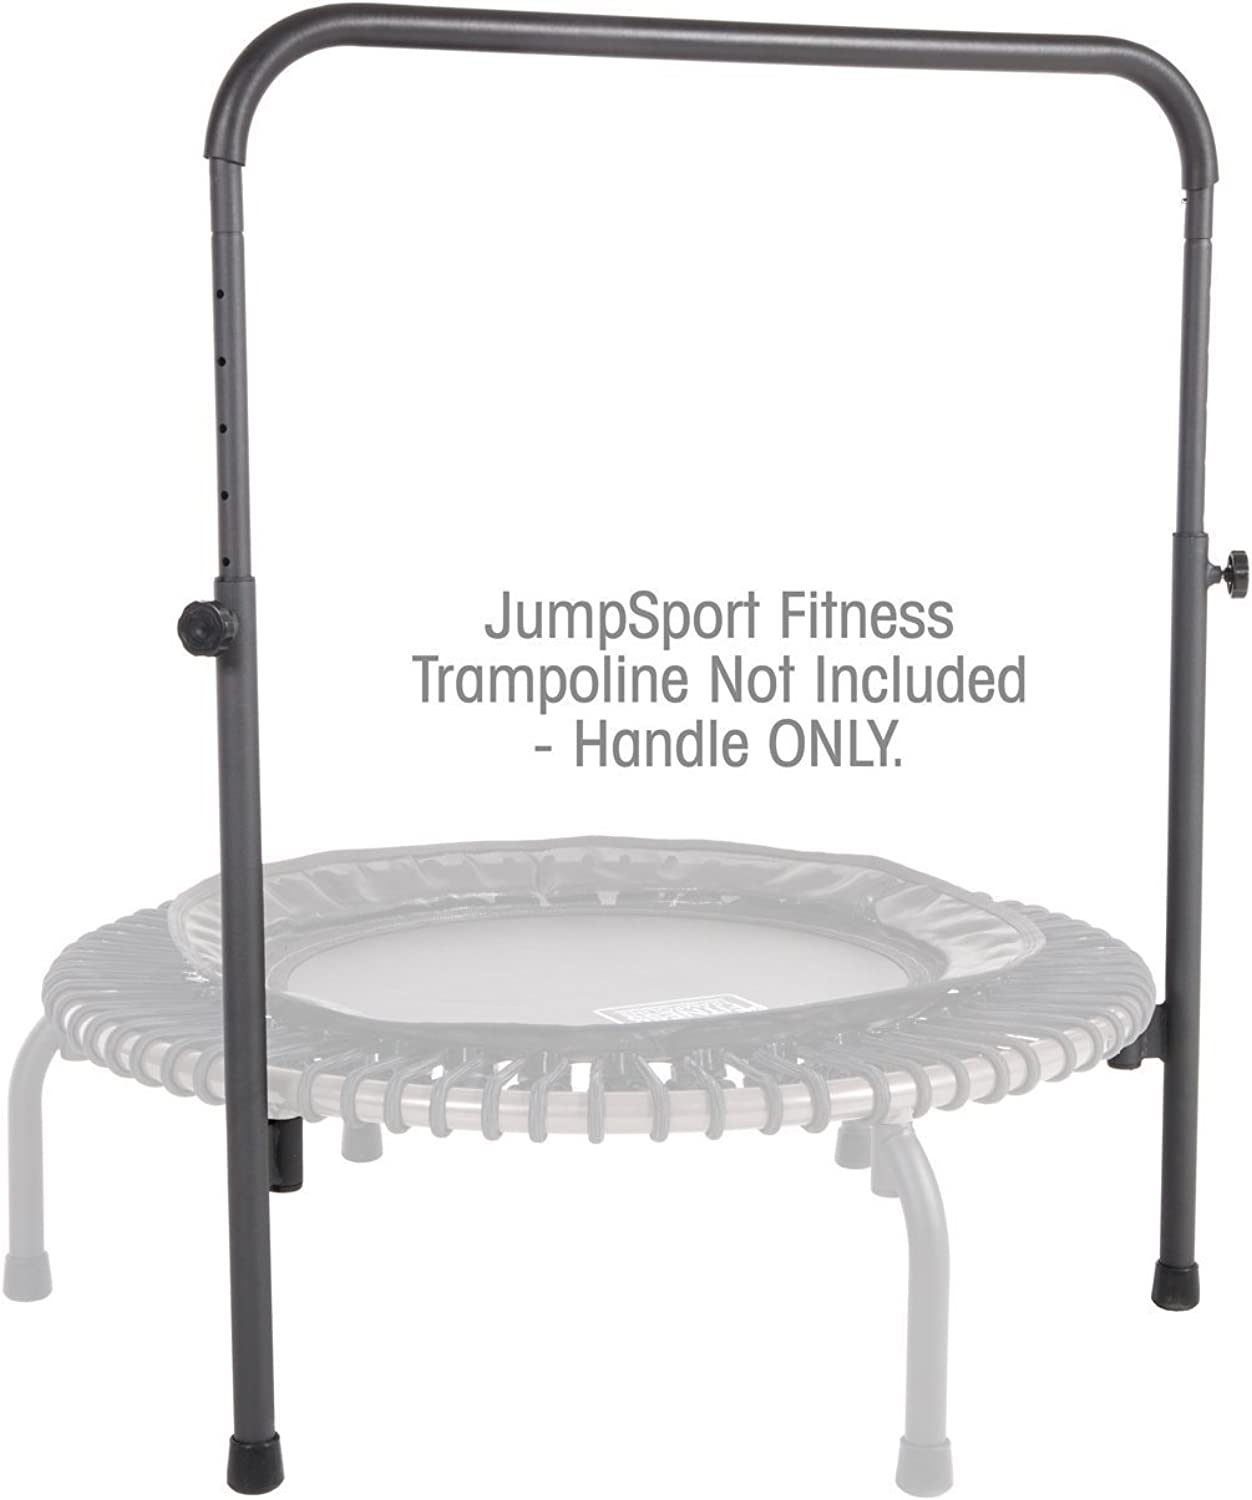 JumpSport Fitness Trampoline Exercise Handle Bar for 110cm Arched Legged Fitness Trampoline